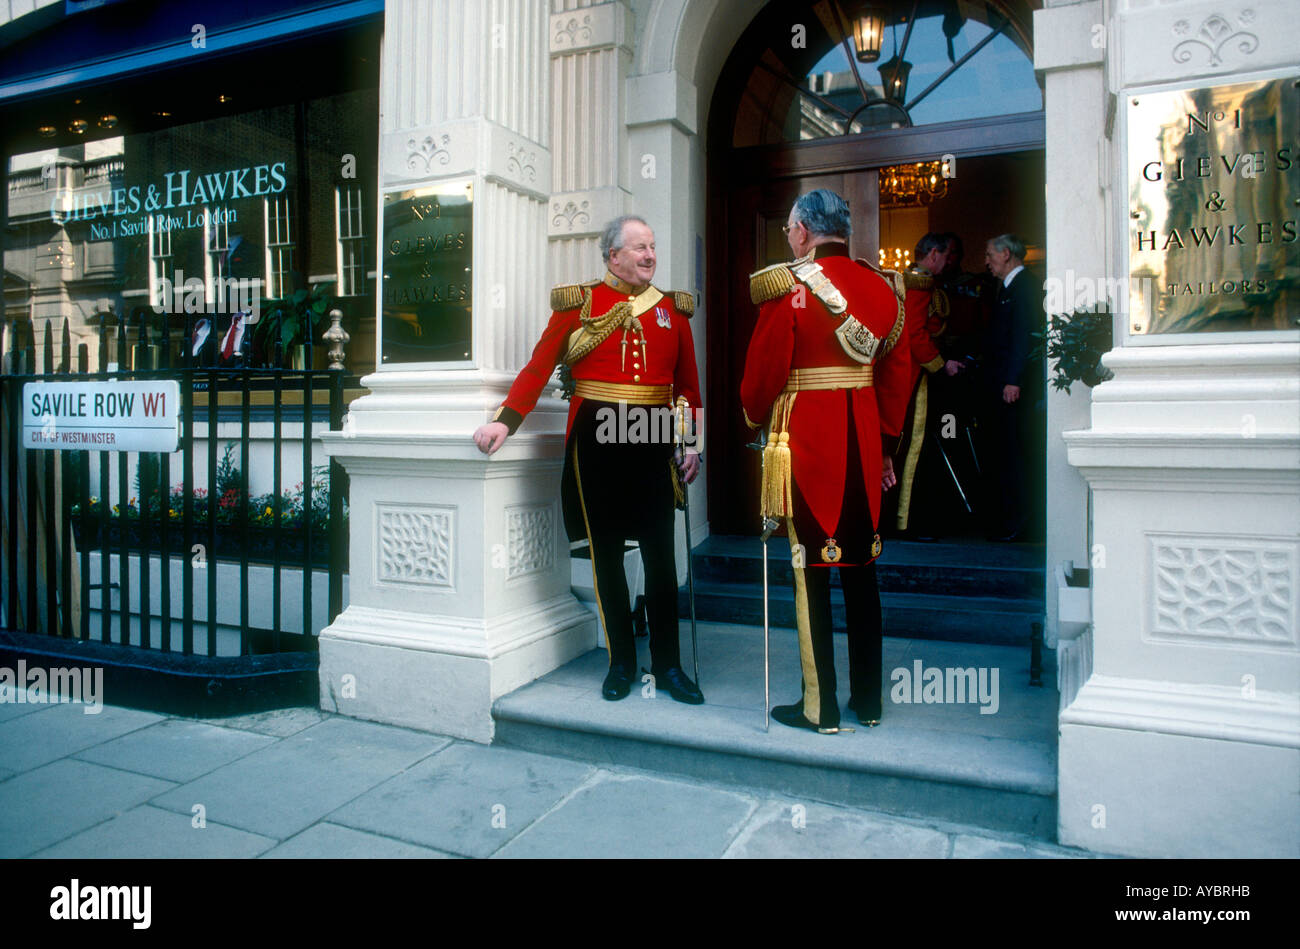 Escorts Stock Photos Images Alamy Gieve Original Body Oil Queens Guards Leaving Gieves And Hawkes No 1 Savile Row After Being Dressed By